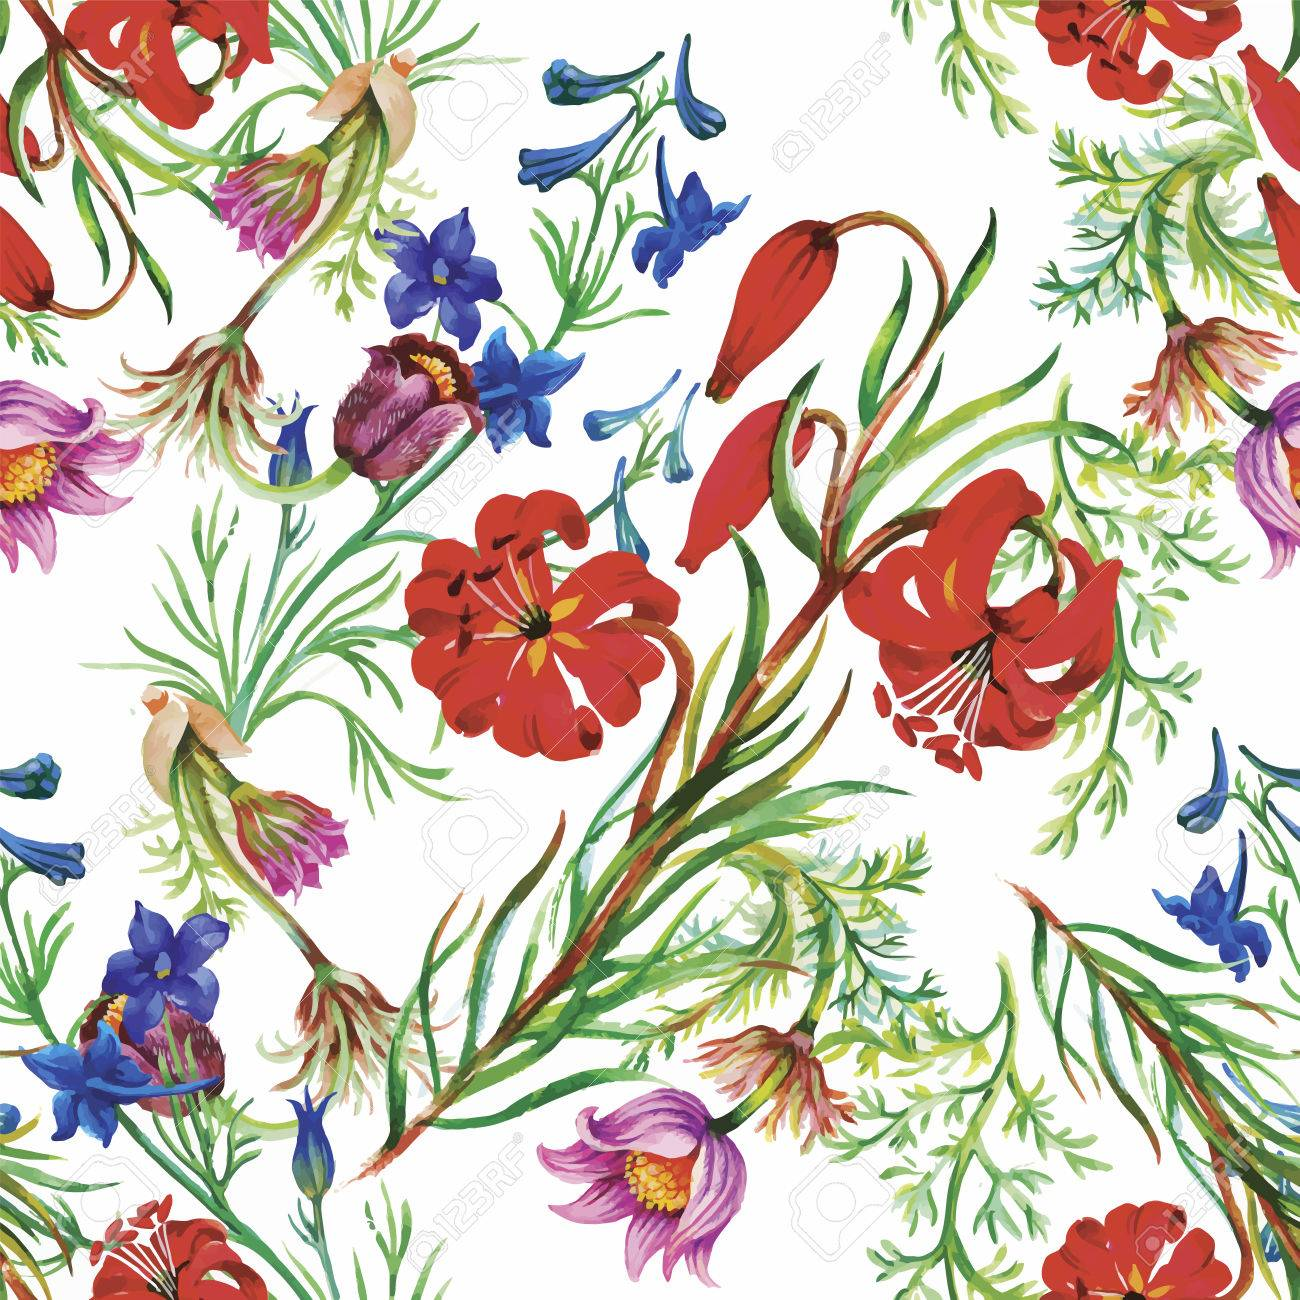 Seamless pattern with Beautiful flowers, Watercolor painting. - 45811775